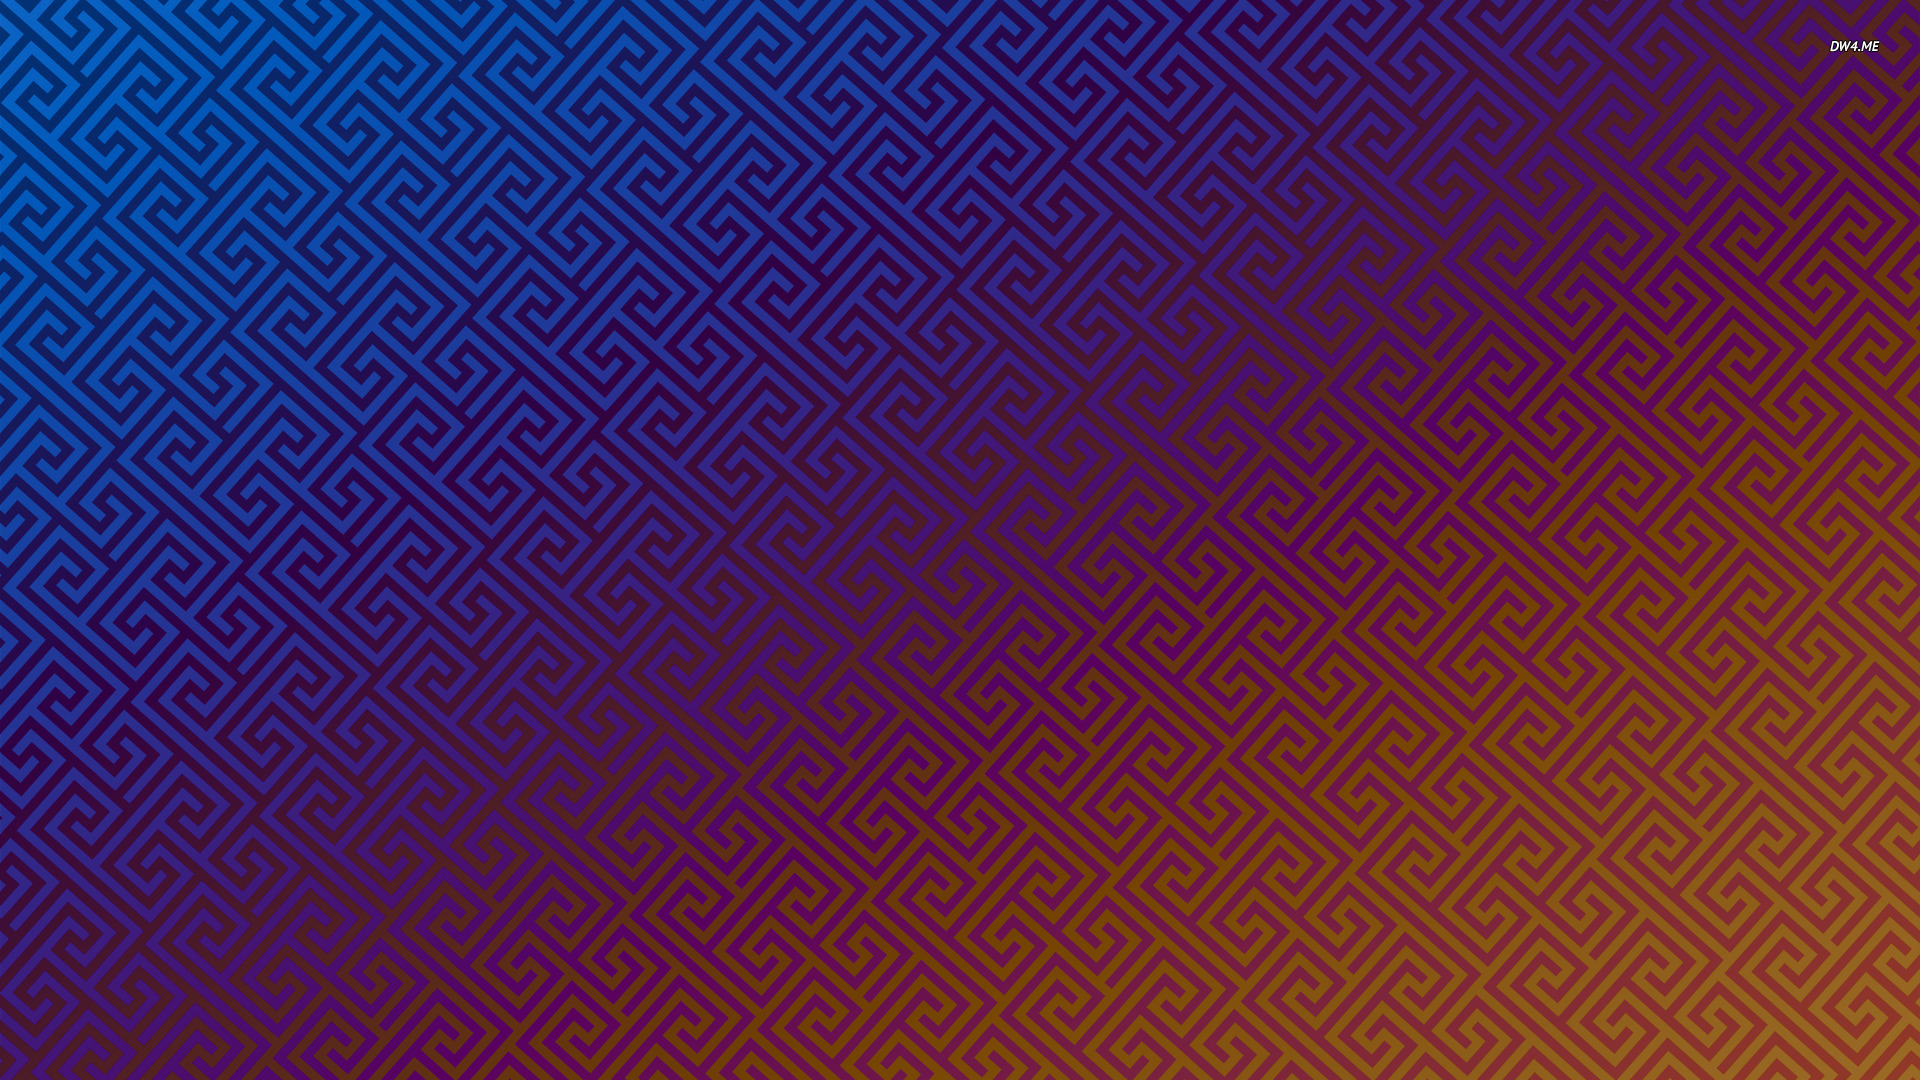 Blue and orange geometrical pattern wallpaper   Vector wallpapers 1920x1080